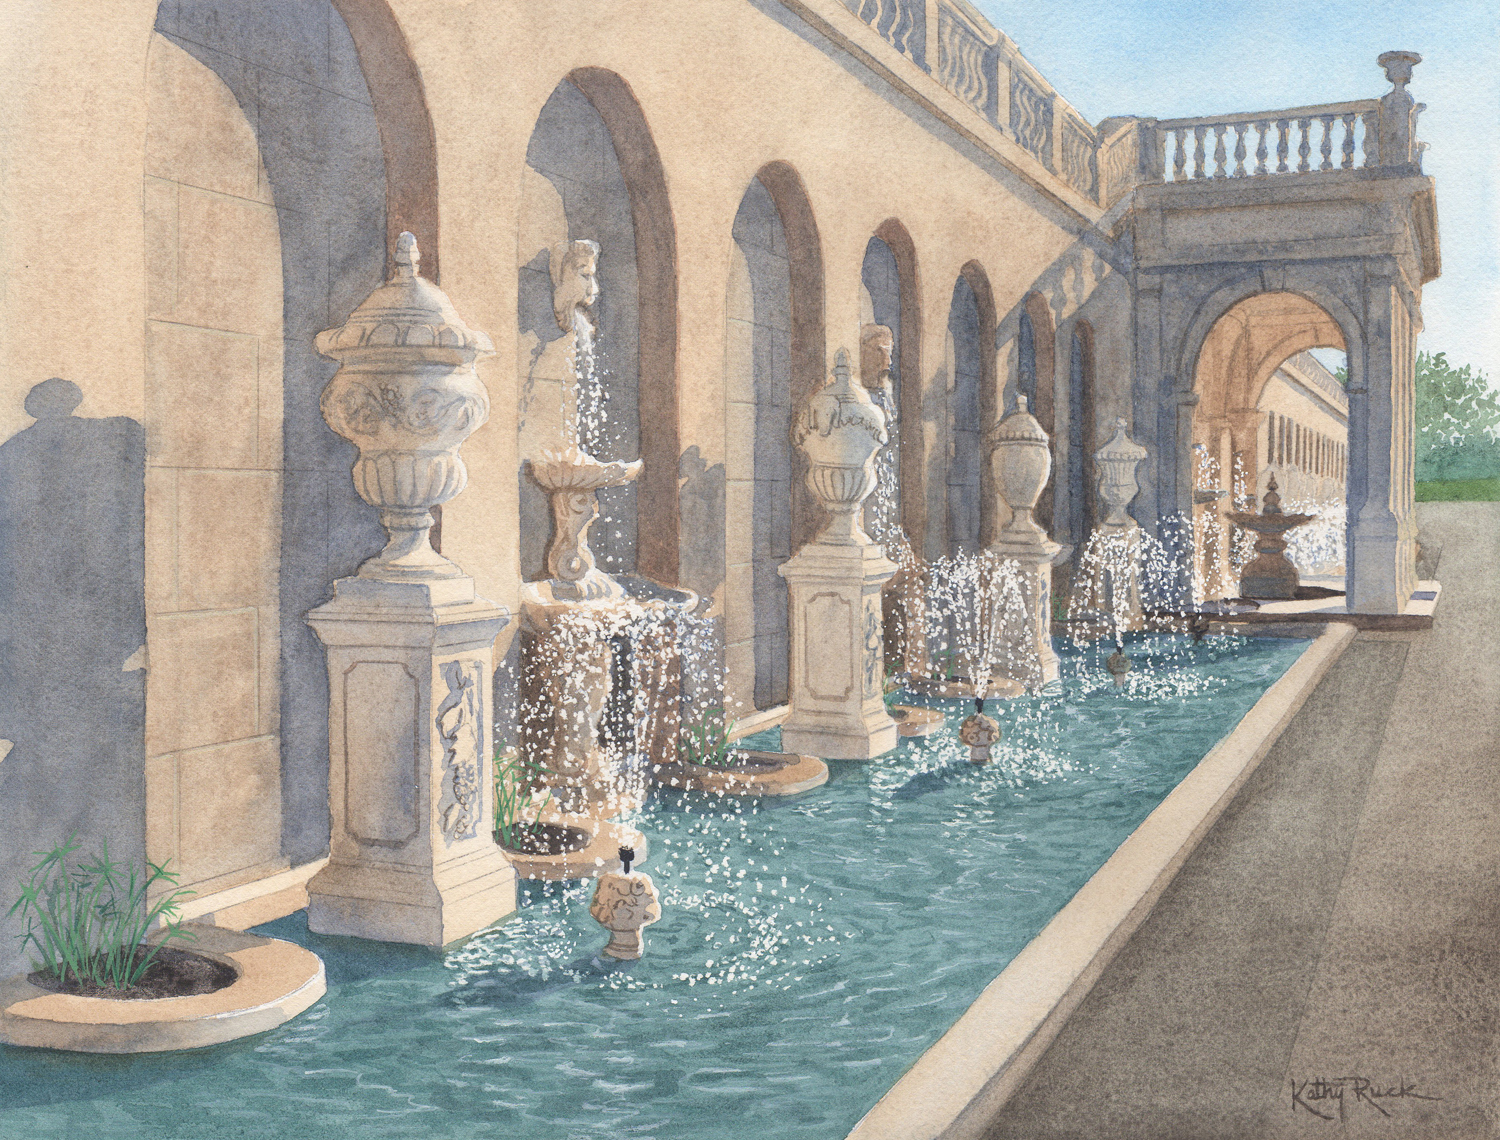 Longwood's Fountains - Kathy Ruck